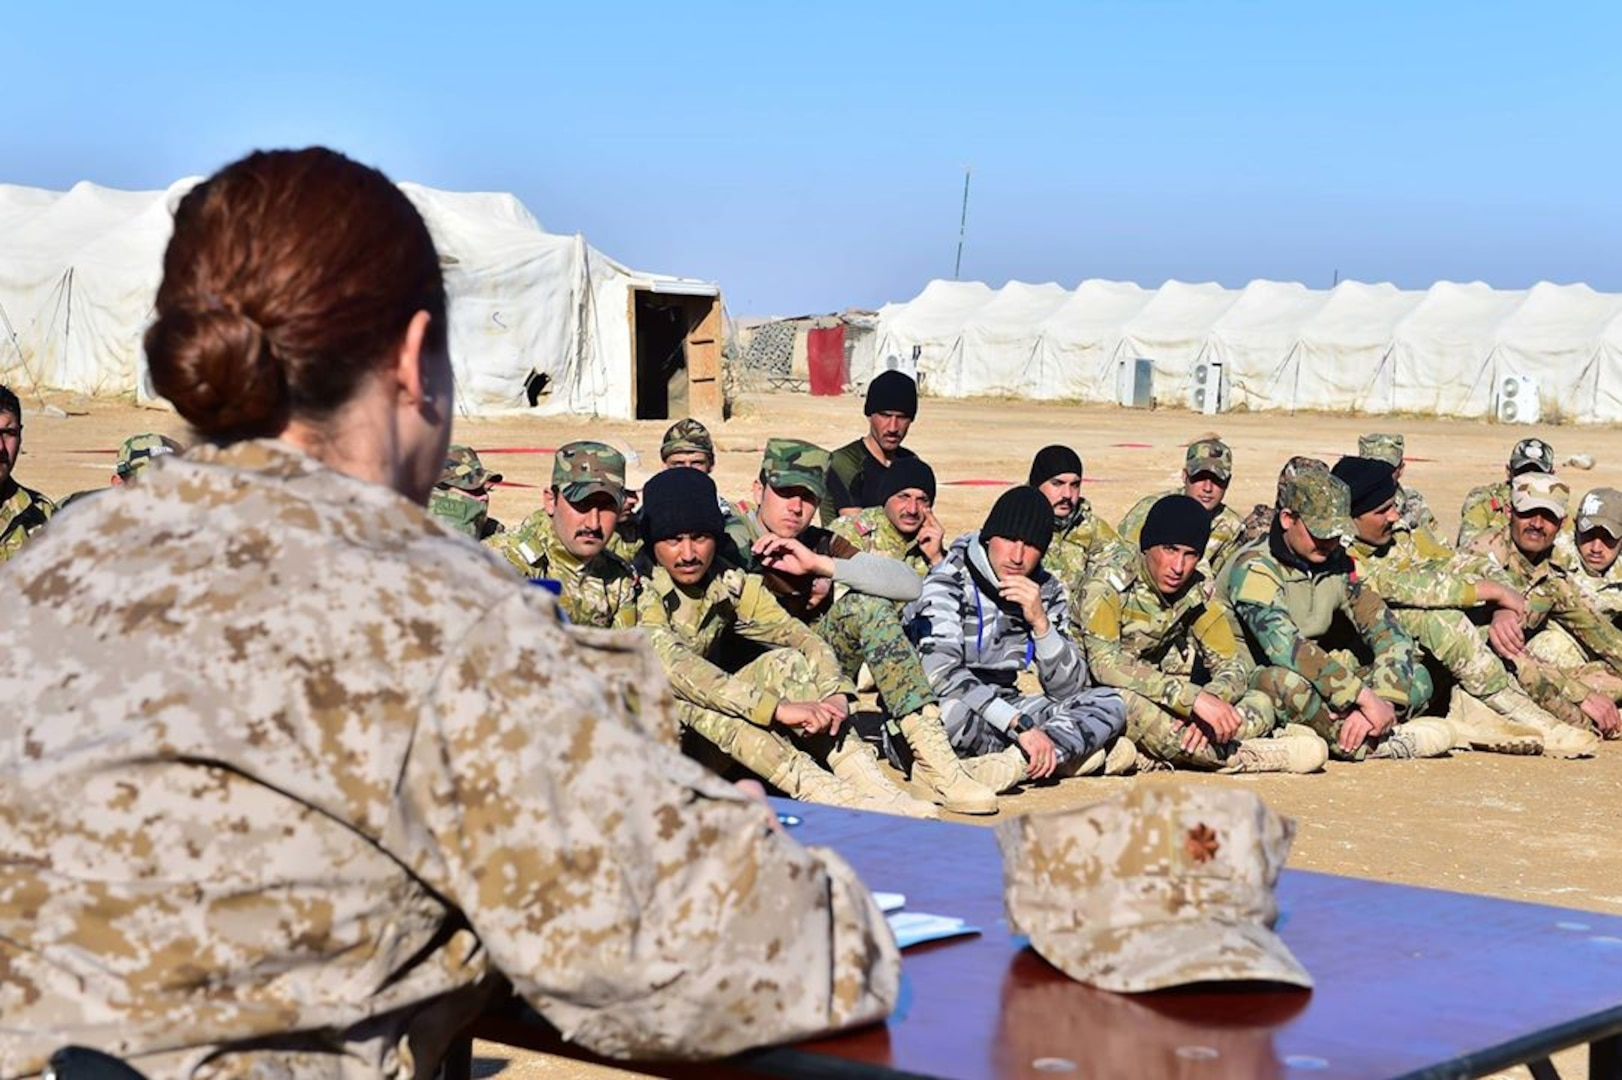 U.S. Navy Lt. Cmdr. Erin M. Baxter-Haynes, a Judge Advocate from Naval Special Warfare Command, assigned as the Legal Special Projects Officer for a special operations command under Combined Joint Task Force - Operation Inherent Resolve, conducts a special Law of Armed Conflict (LOAC) and rules of engagement (ROE) training for the first graduating company at a unique, multi-tribe Iraqi force, the A'ali Al Furat Brigade, at a training ground in Western Iraq, Jan. 4, 2017. The A'ali Al Furat Brigade, which has nearly 200 fighters from more than 20 tribes - the first multi-tribe unit formed in Iraq, is the first recorded tribal unit to receive LOAC and ROE training specifically from a U.S. attorney through coordination with Coalition partners. CJTF-OIR is the global Coalition to defeat ISIS in Iraq and Syria.